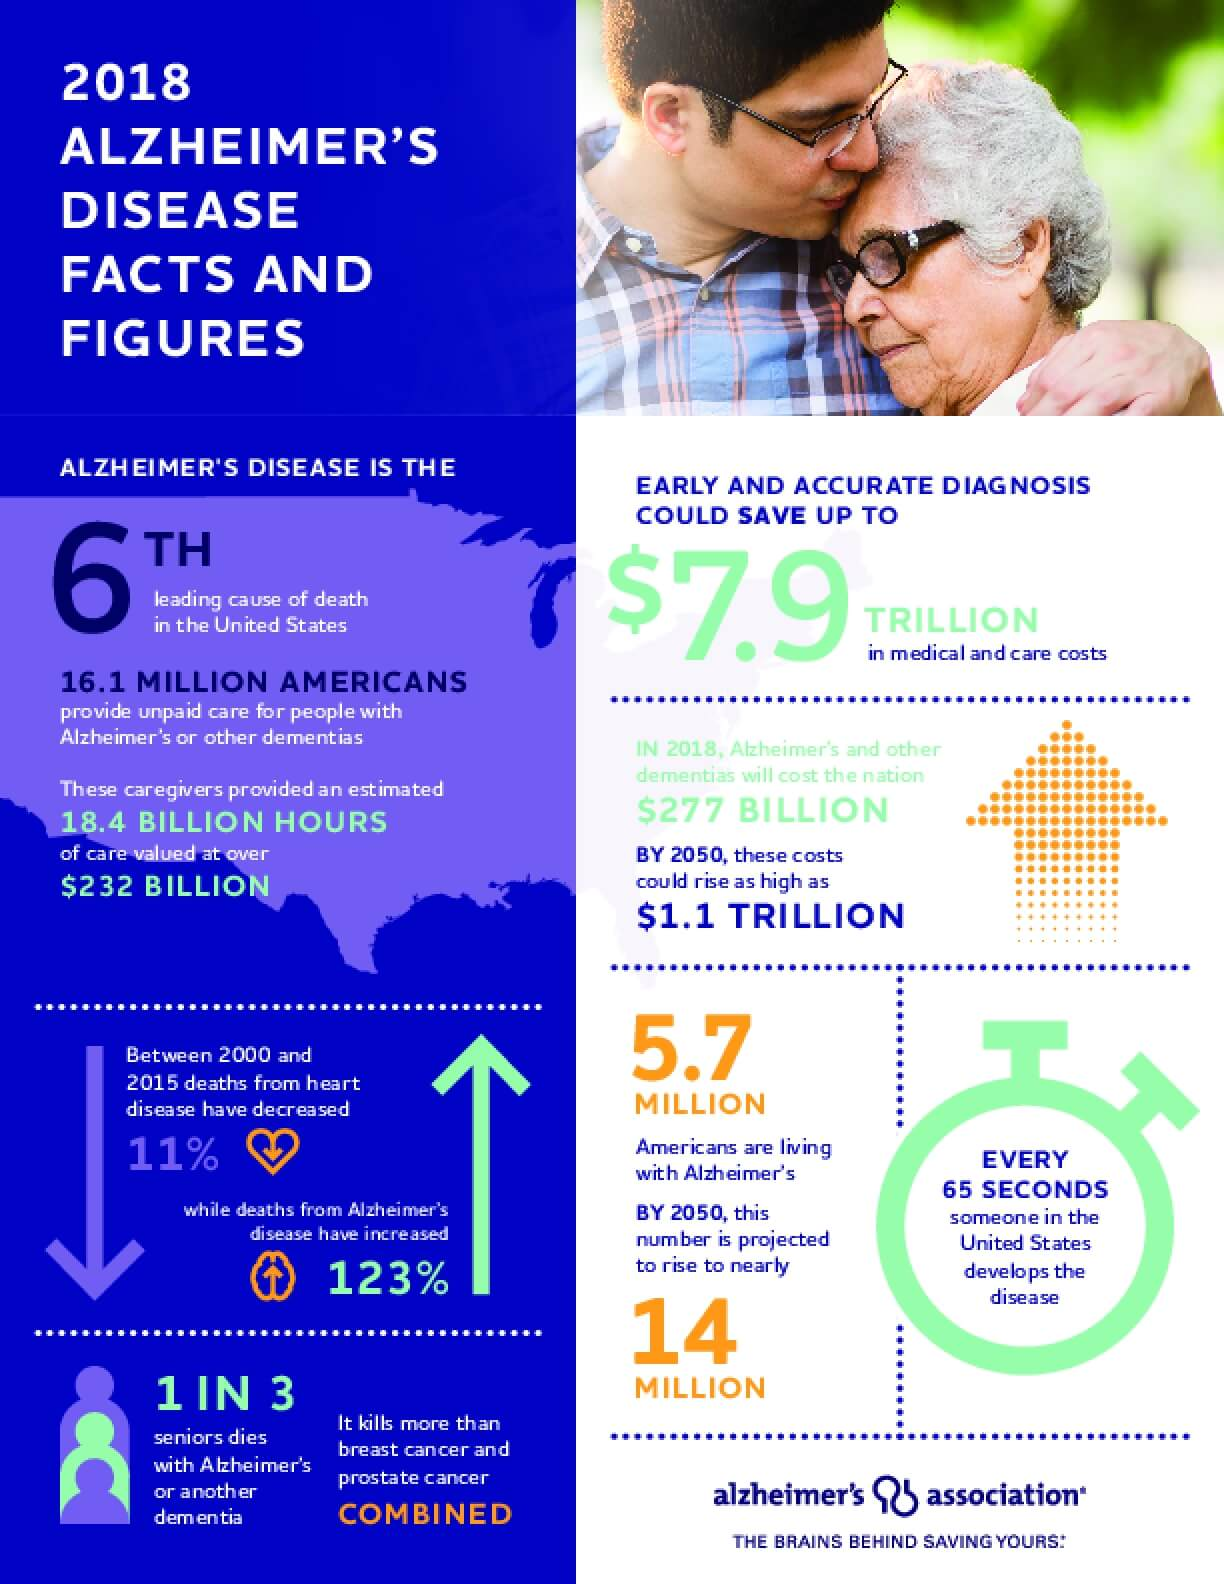 2018 Alzheimer's Disease Facts and Figures, Infographic